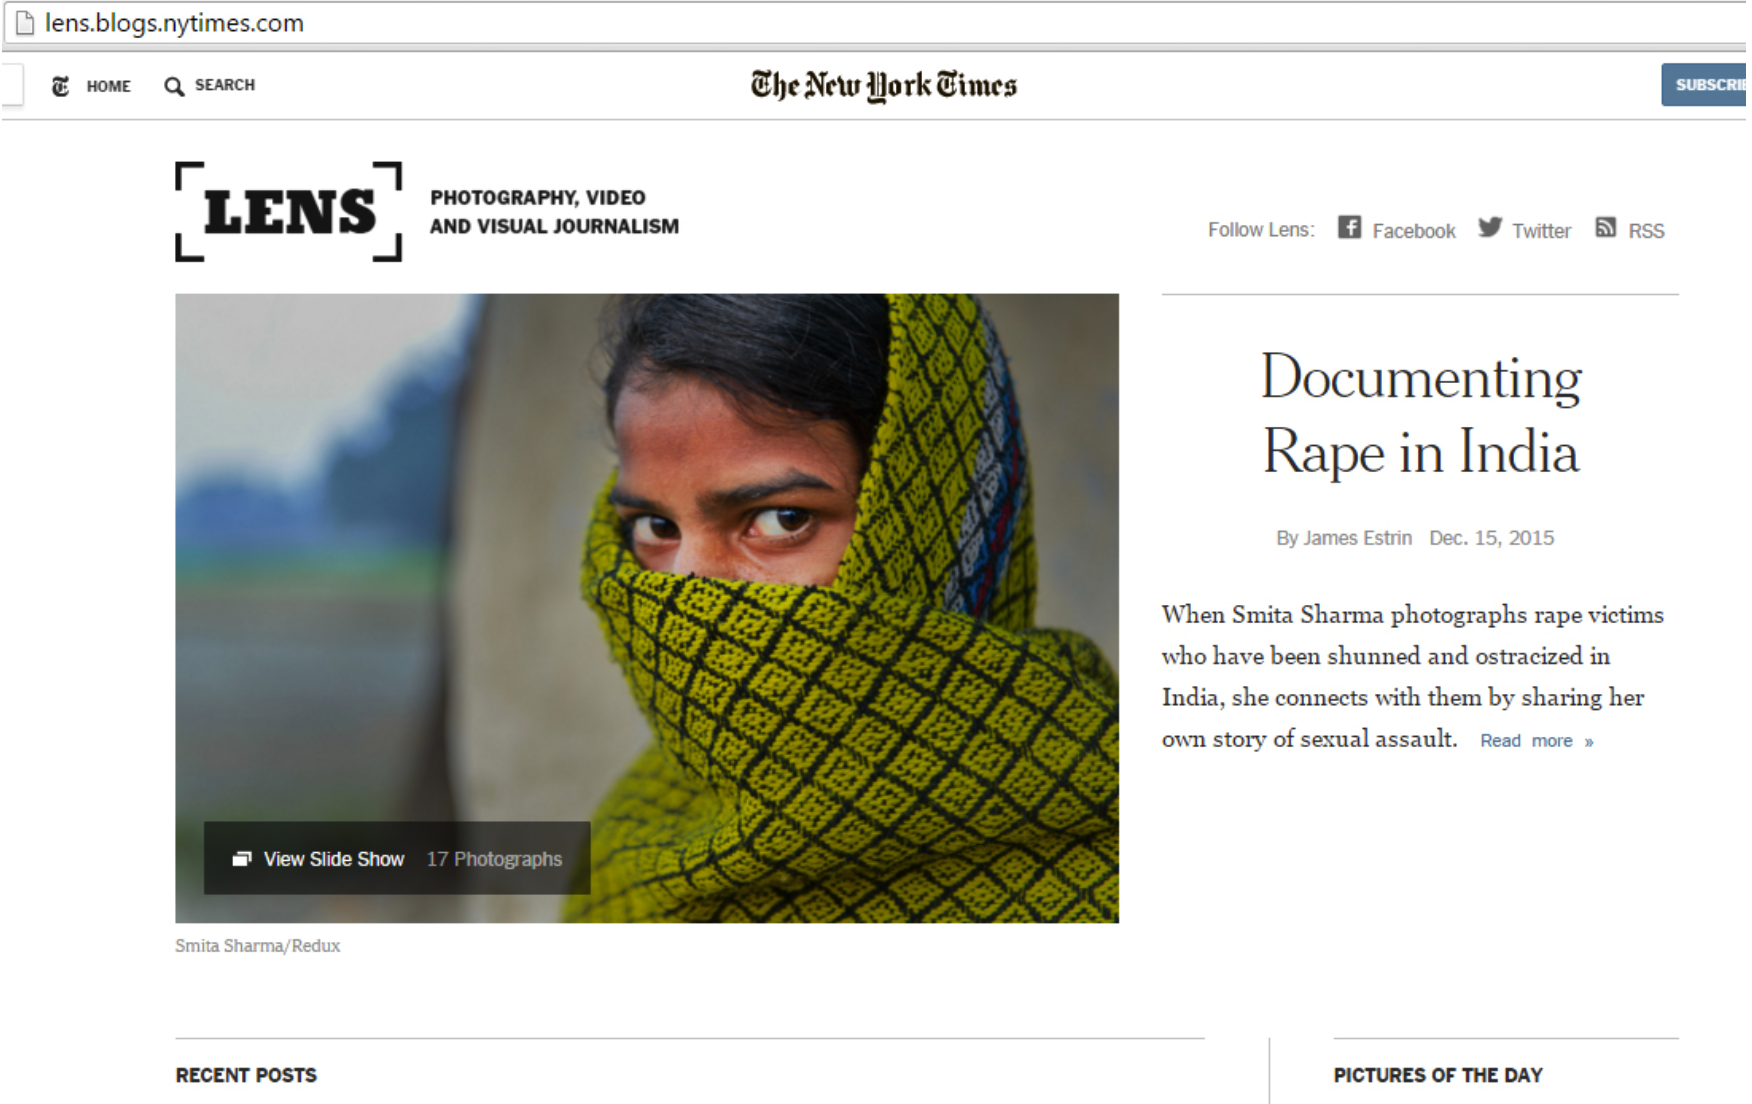 https://lens.blogs.nytimes.com/2015/12/15/documenting-rape-in-india/?smid=fb-nytimes&smtyp=cur